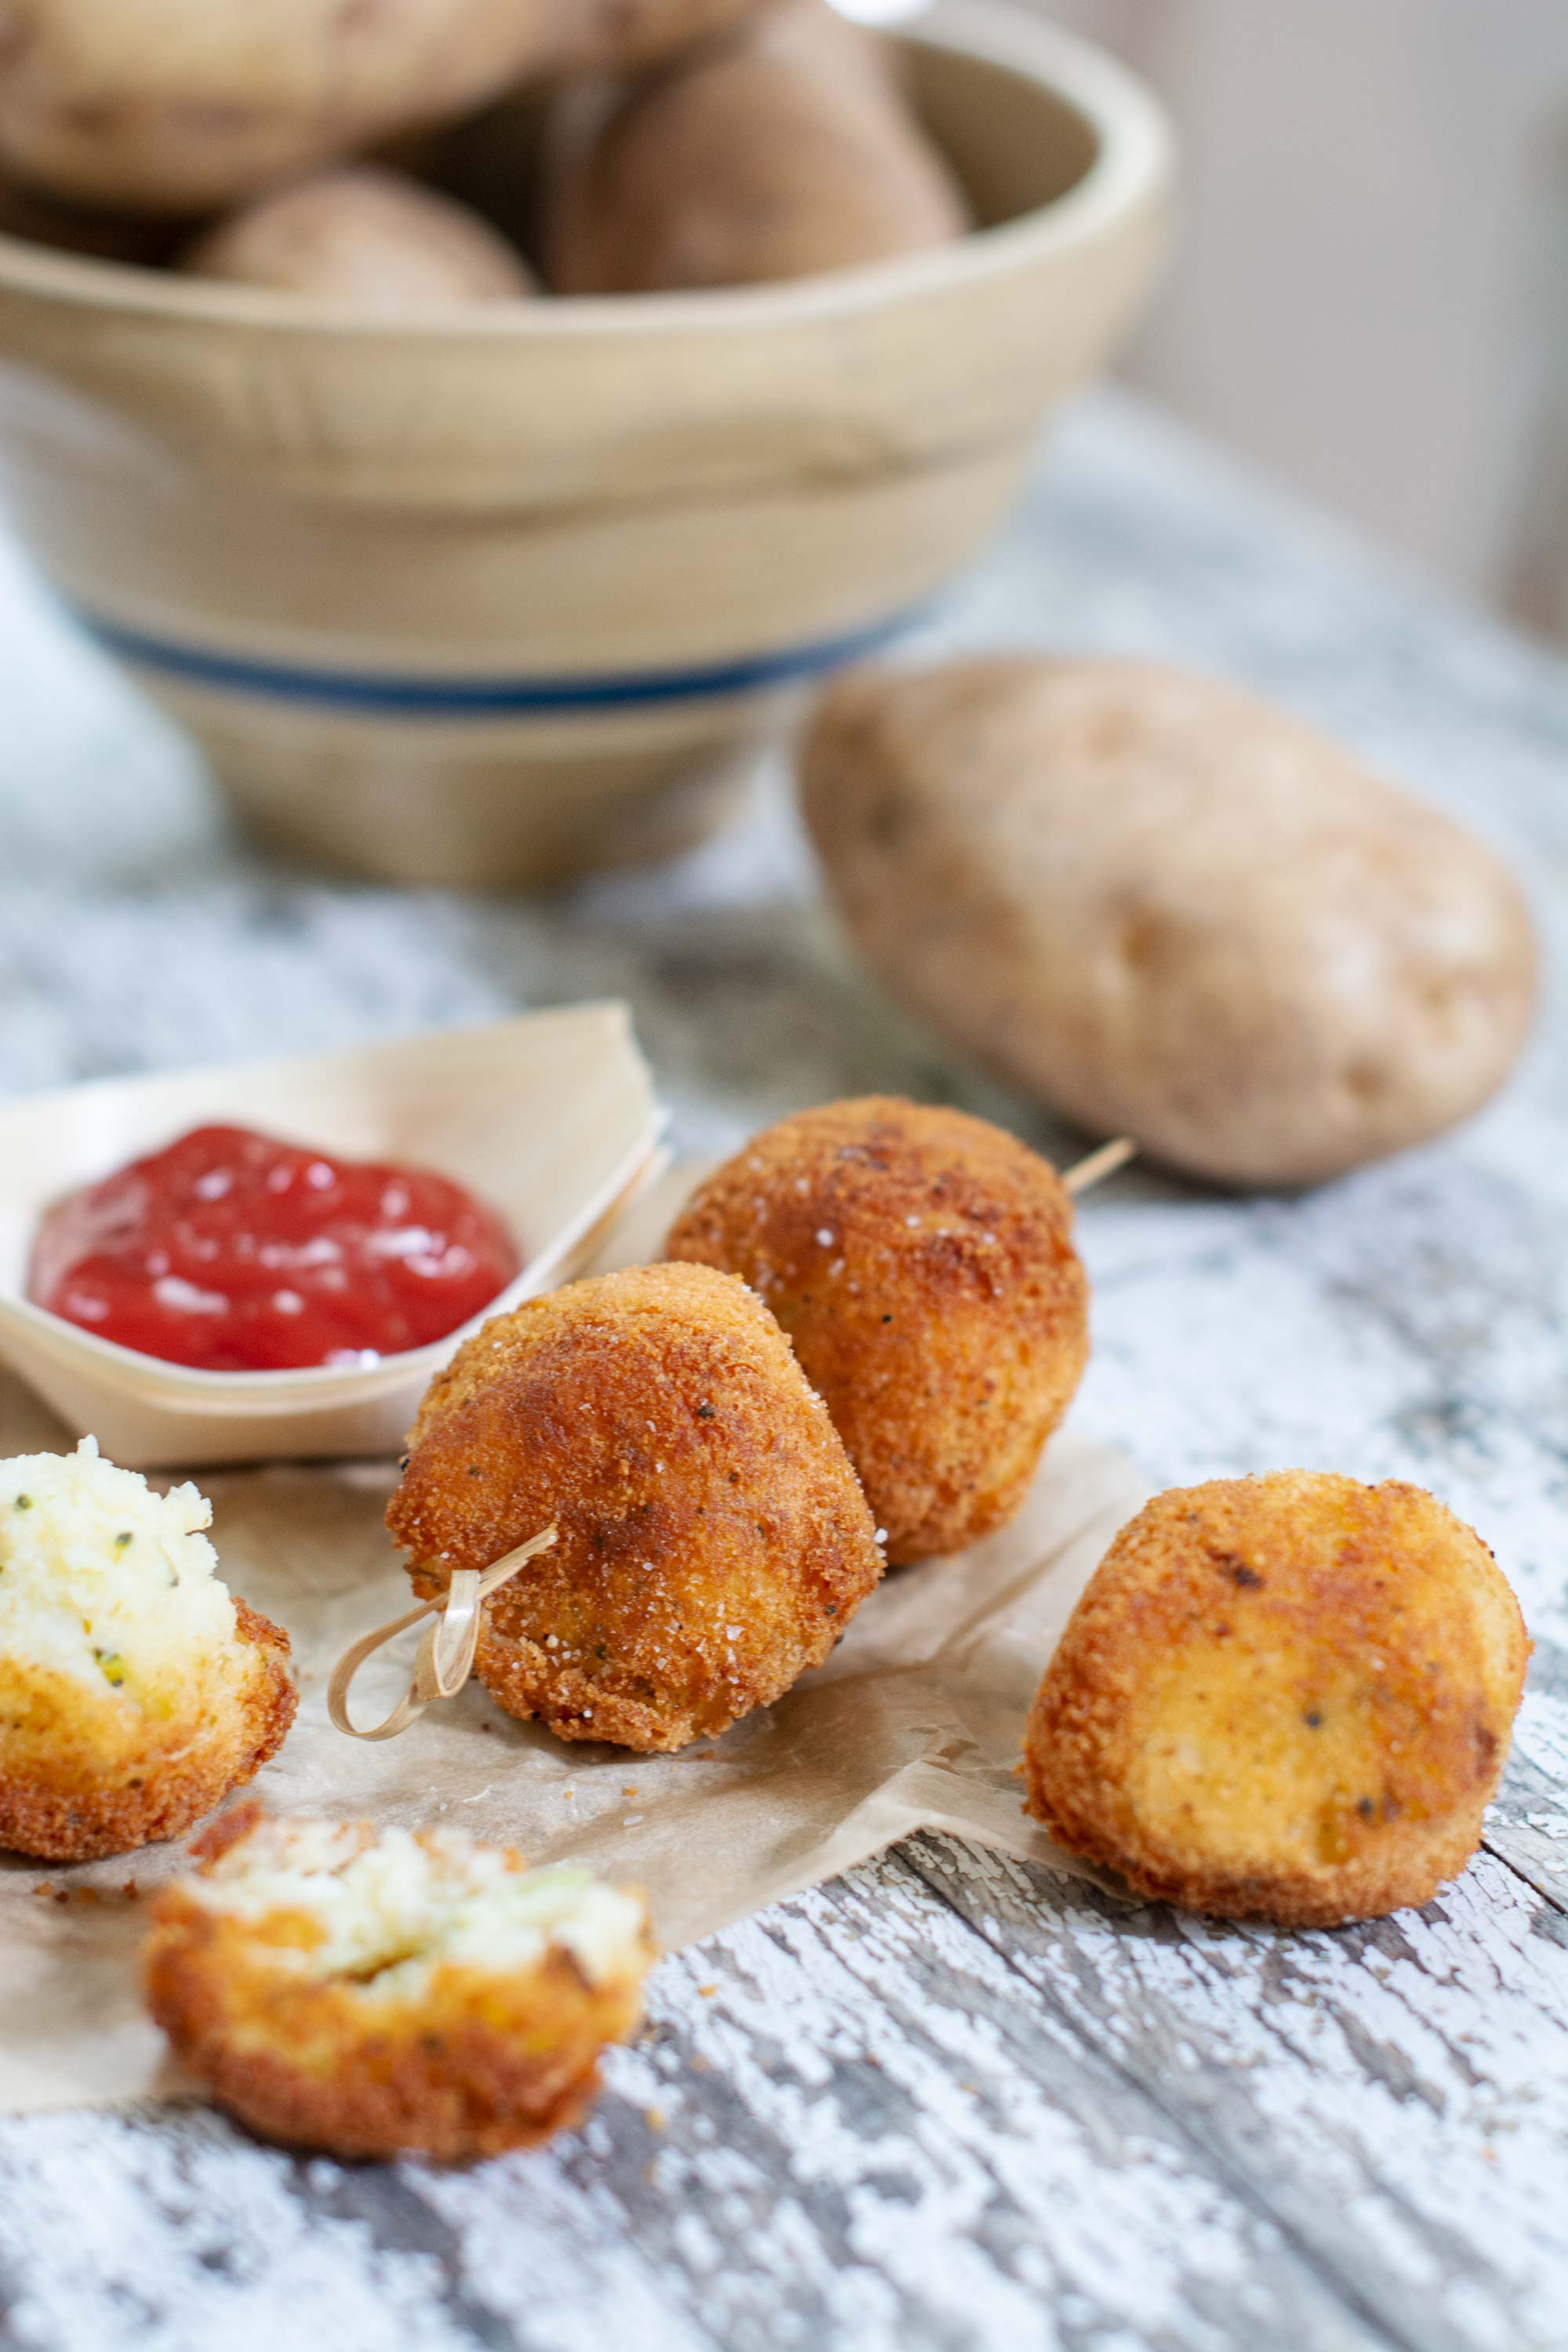 Ketchup with mashed vegetable balls and ketchup on white table